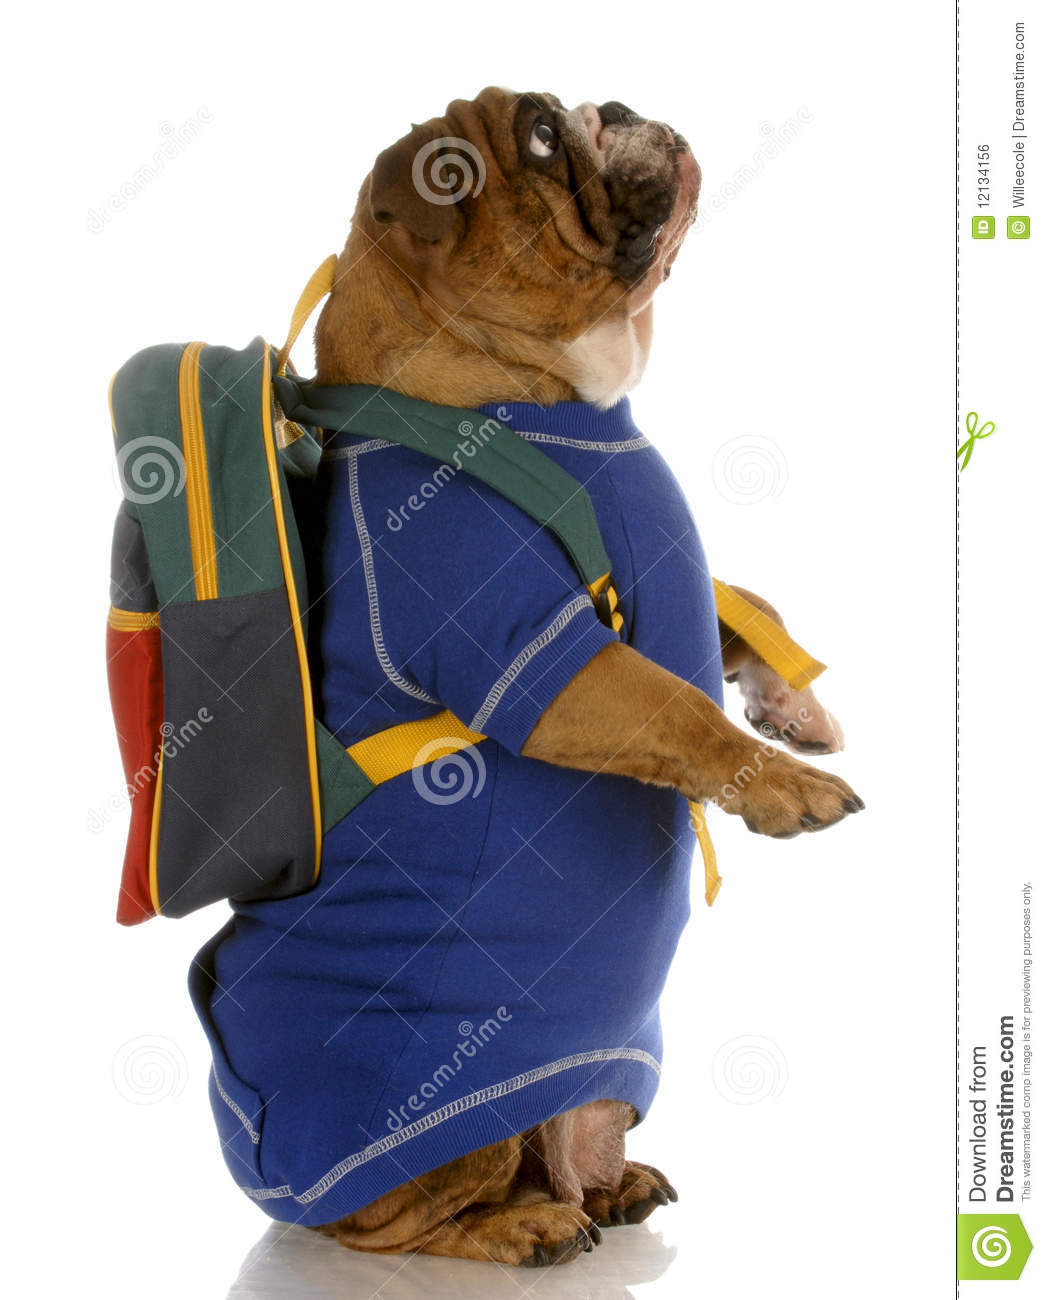 English bulldog standing up wearing blue sweater and backpack.